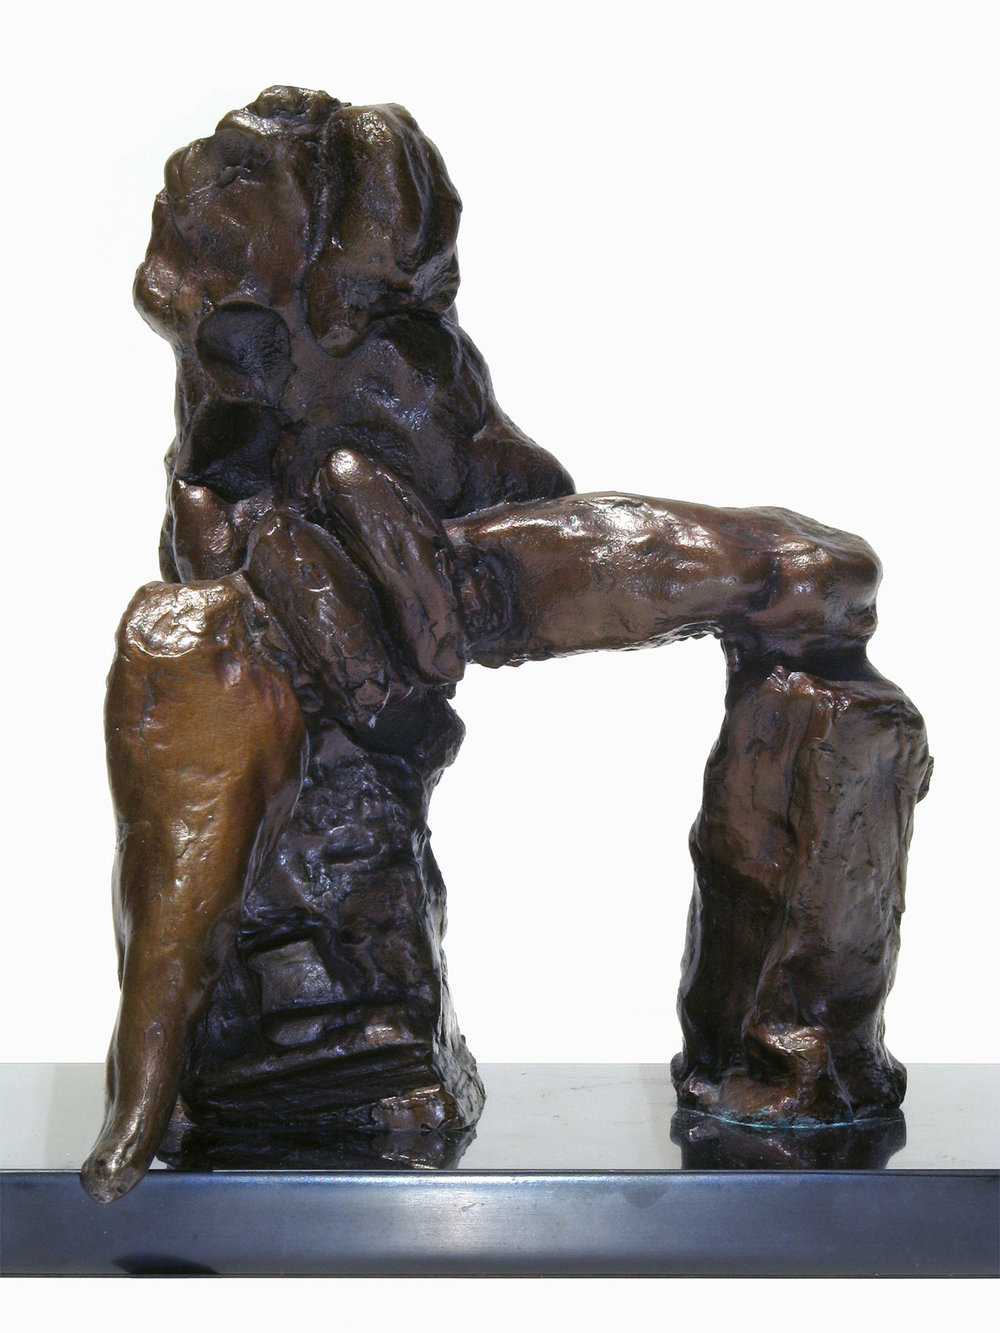 "Study for Juno in the Judgment of Paris  c.1964, bronze 8 ½ x 6 ½ x 5 ½"" Private collections 30.268"